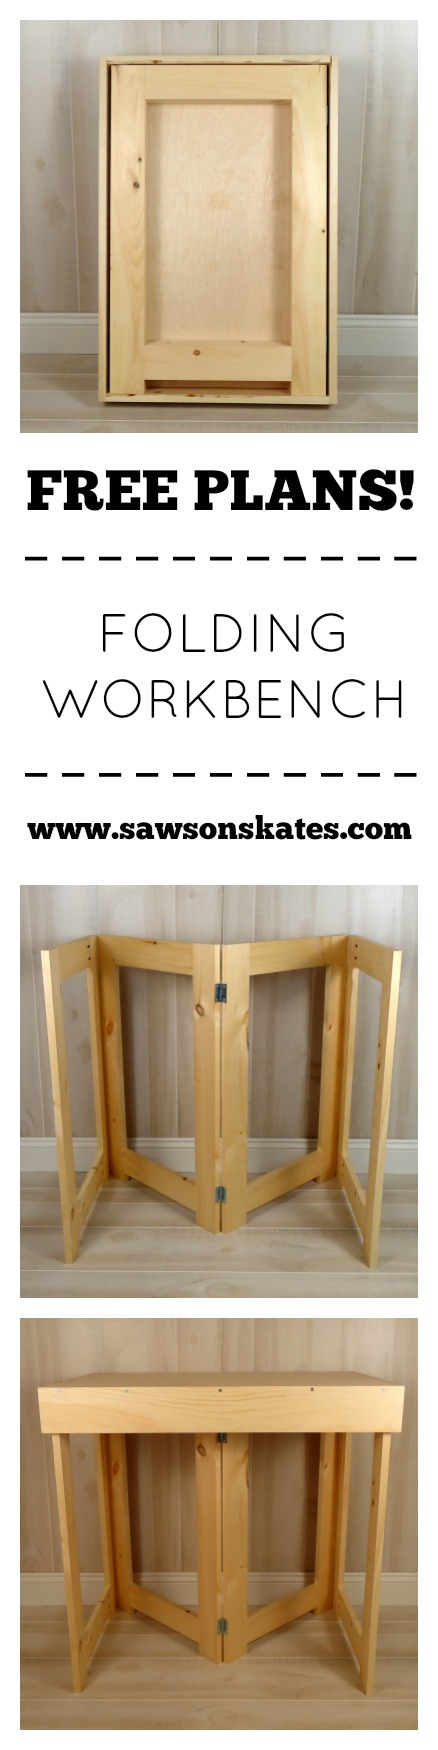 how to make a folding workbench free plans